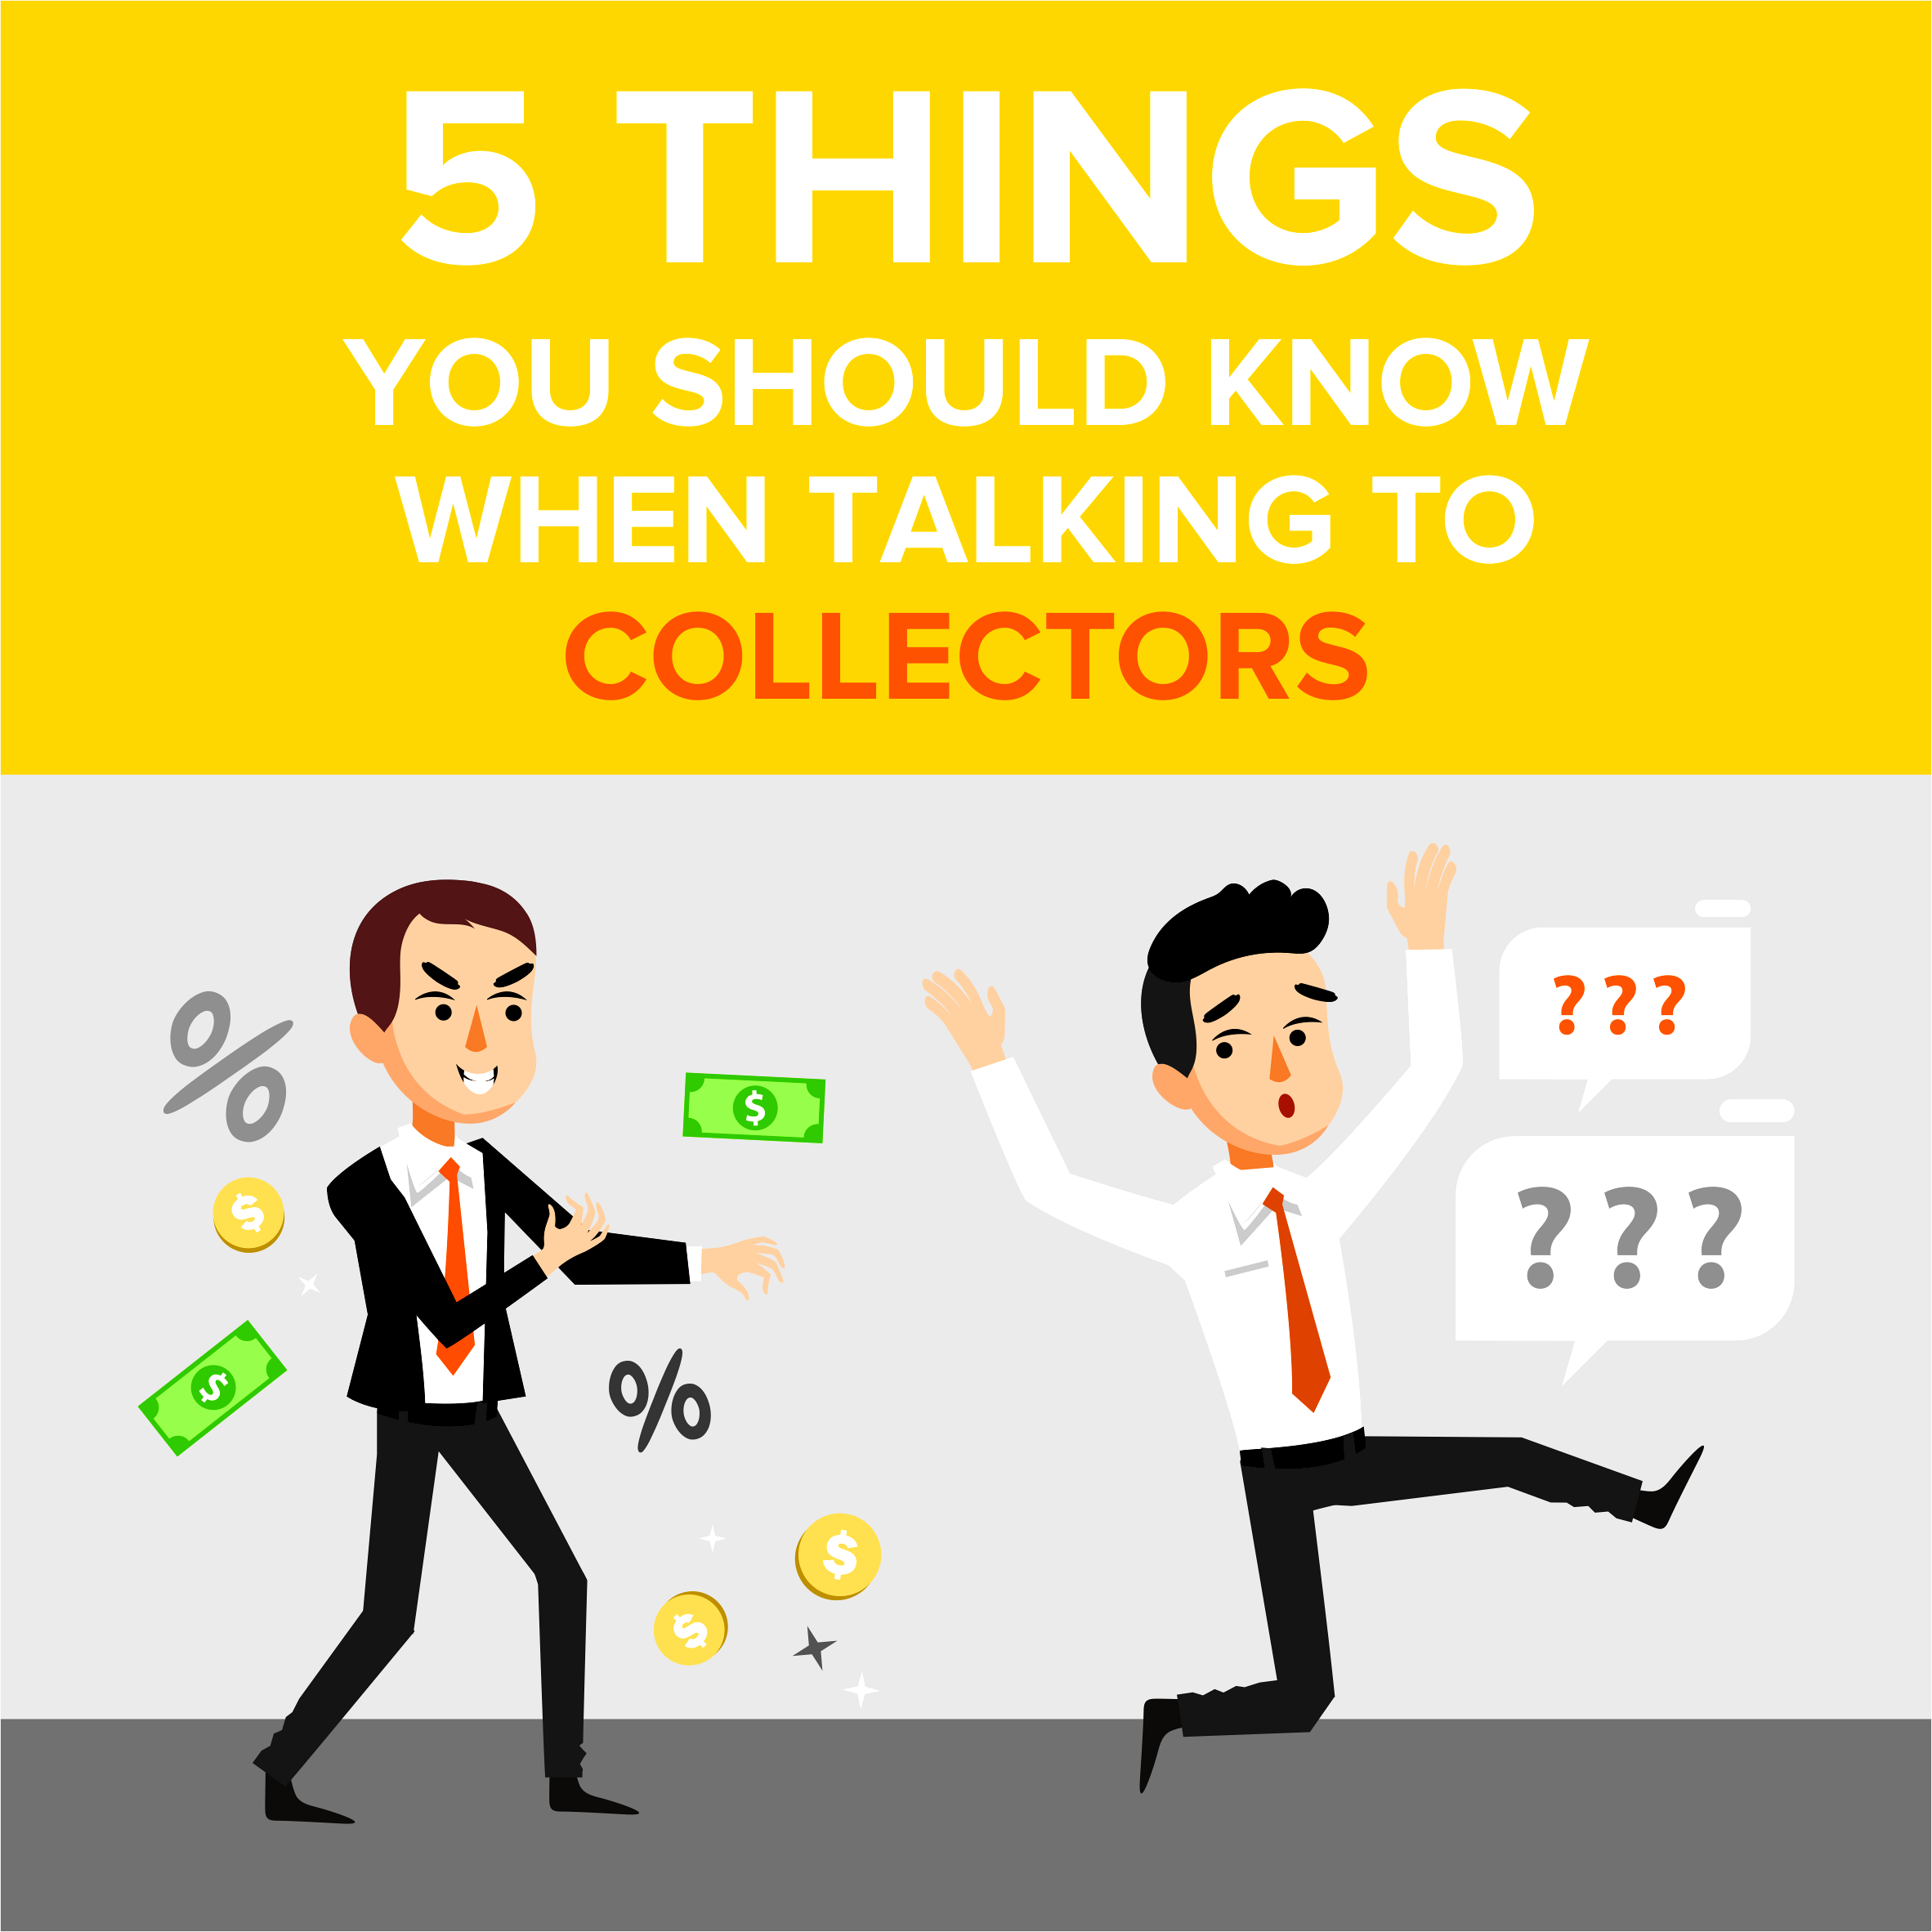 5 Things You Should Know When Talking to Collectors